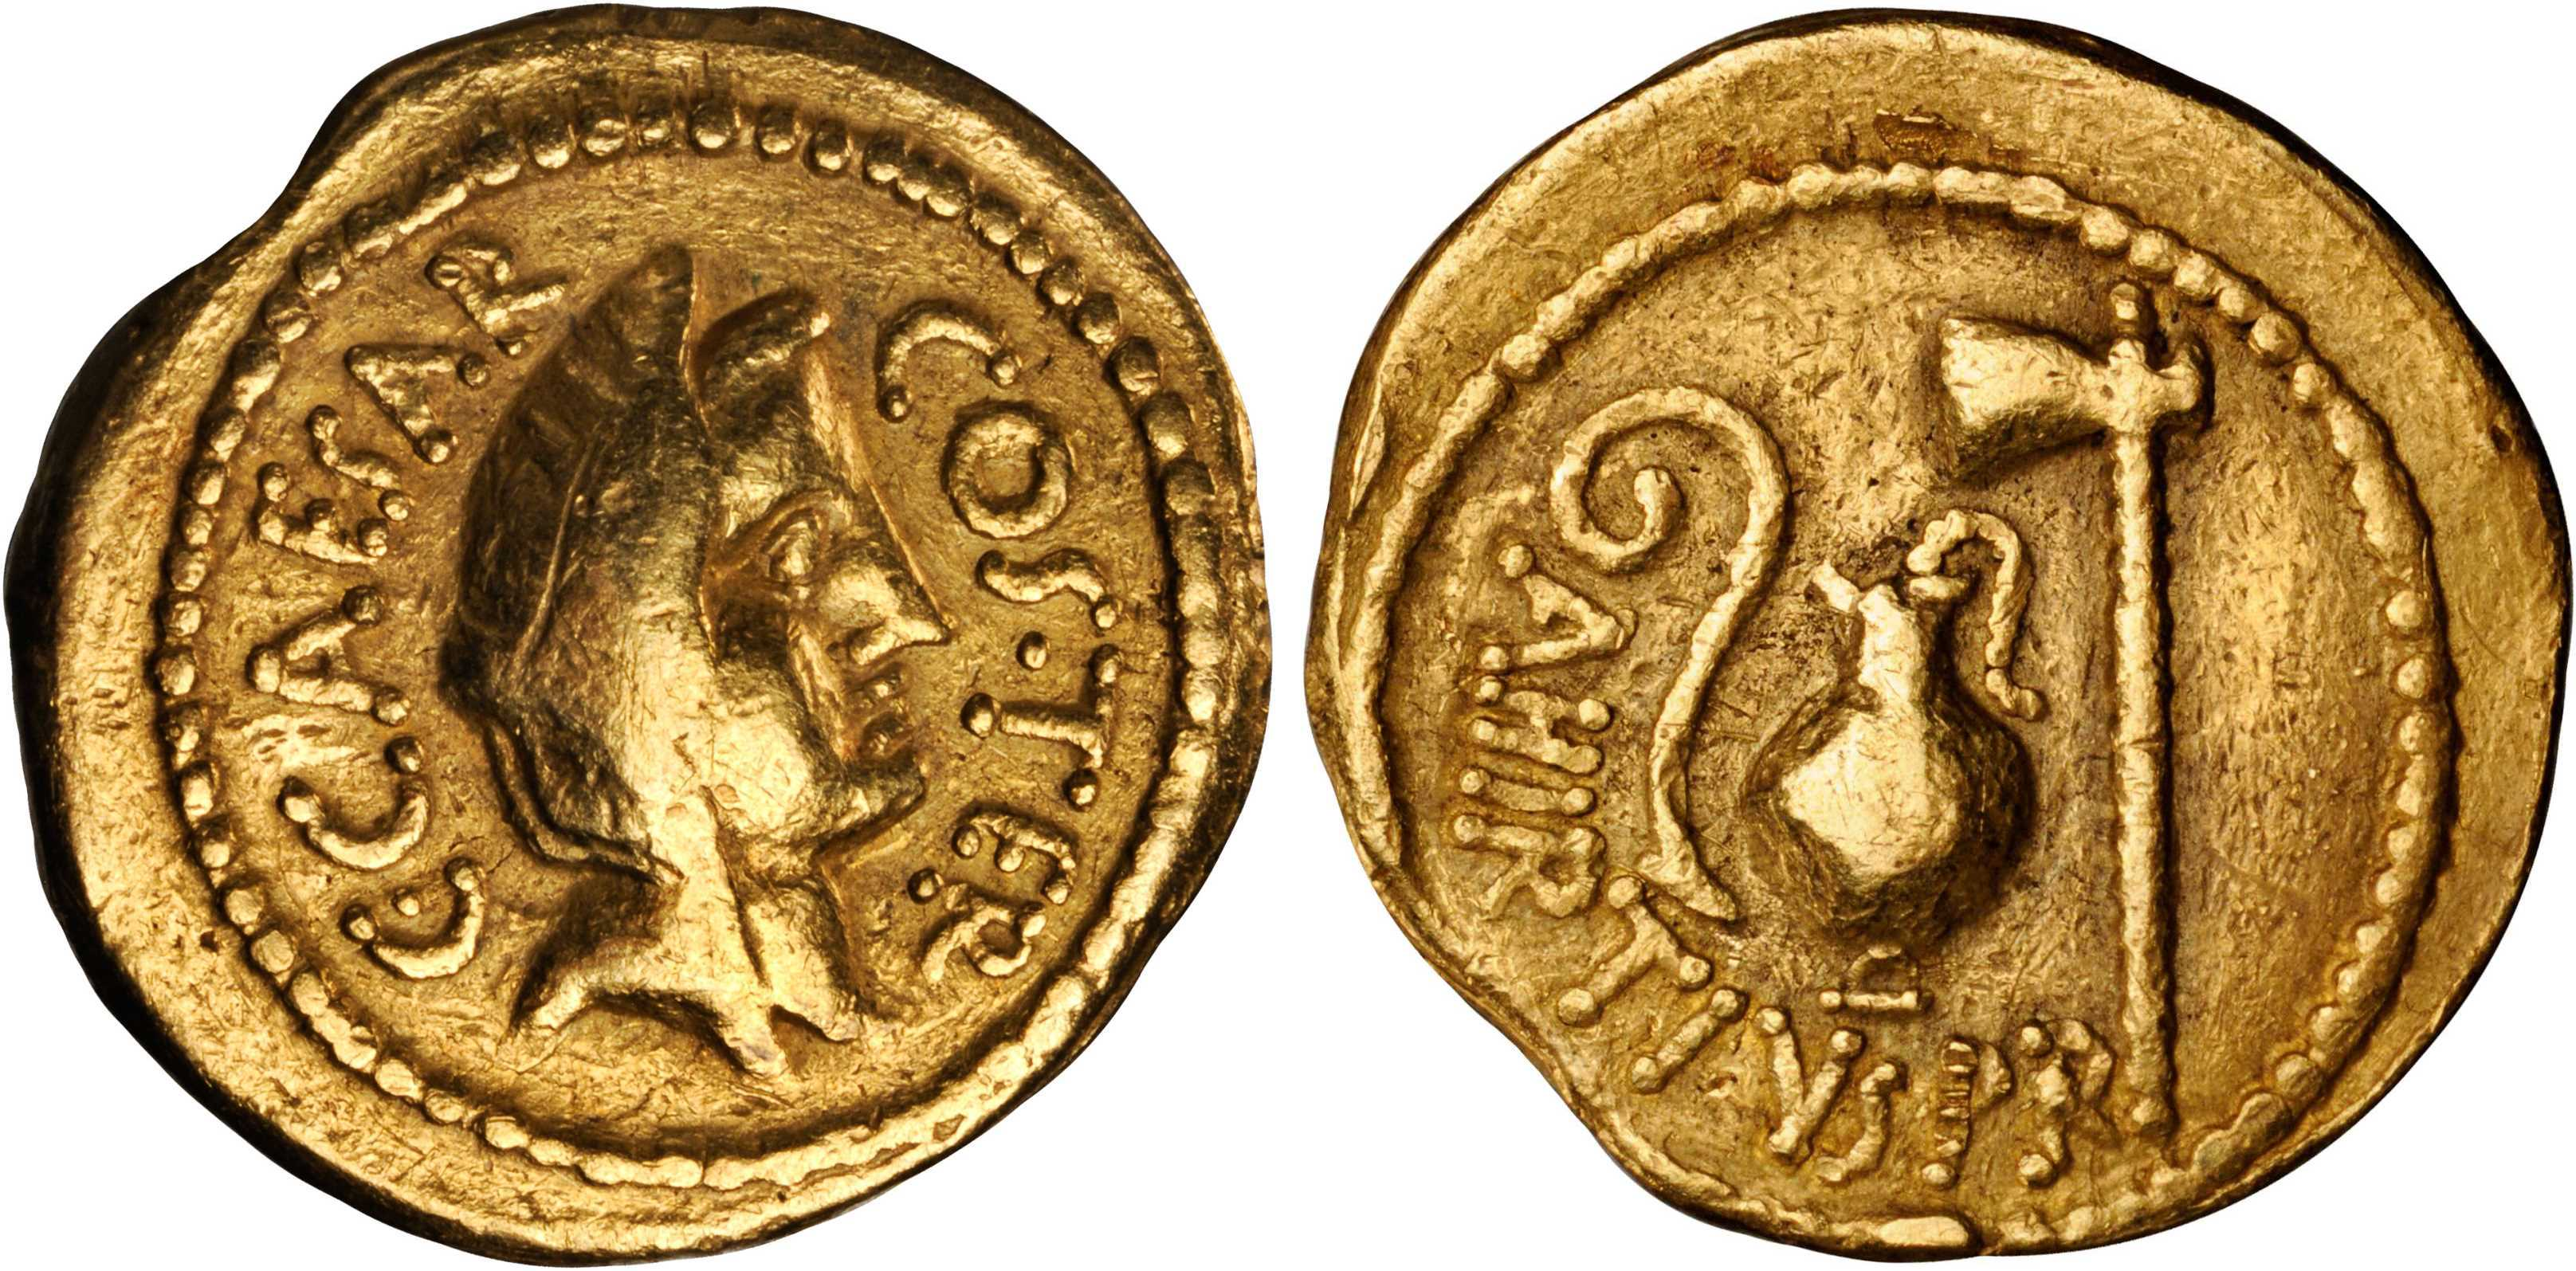 Obrien coin guide roman emperors and their coins part i the old roman coin julius caesar gold aureus rome mint 46 bc freerunsca Images